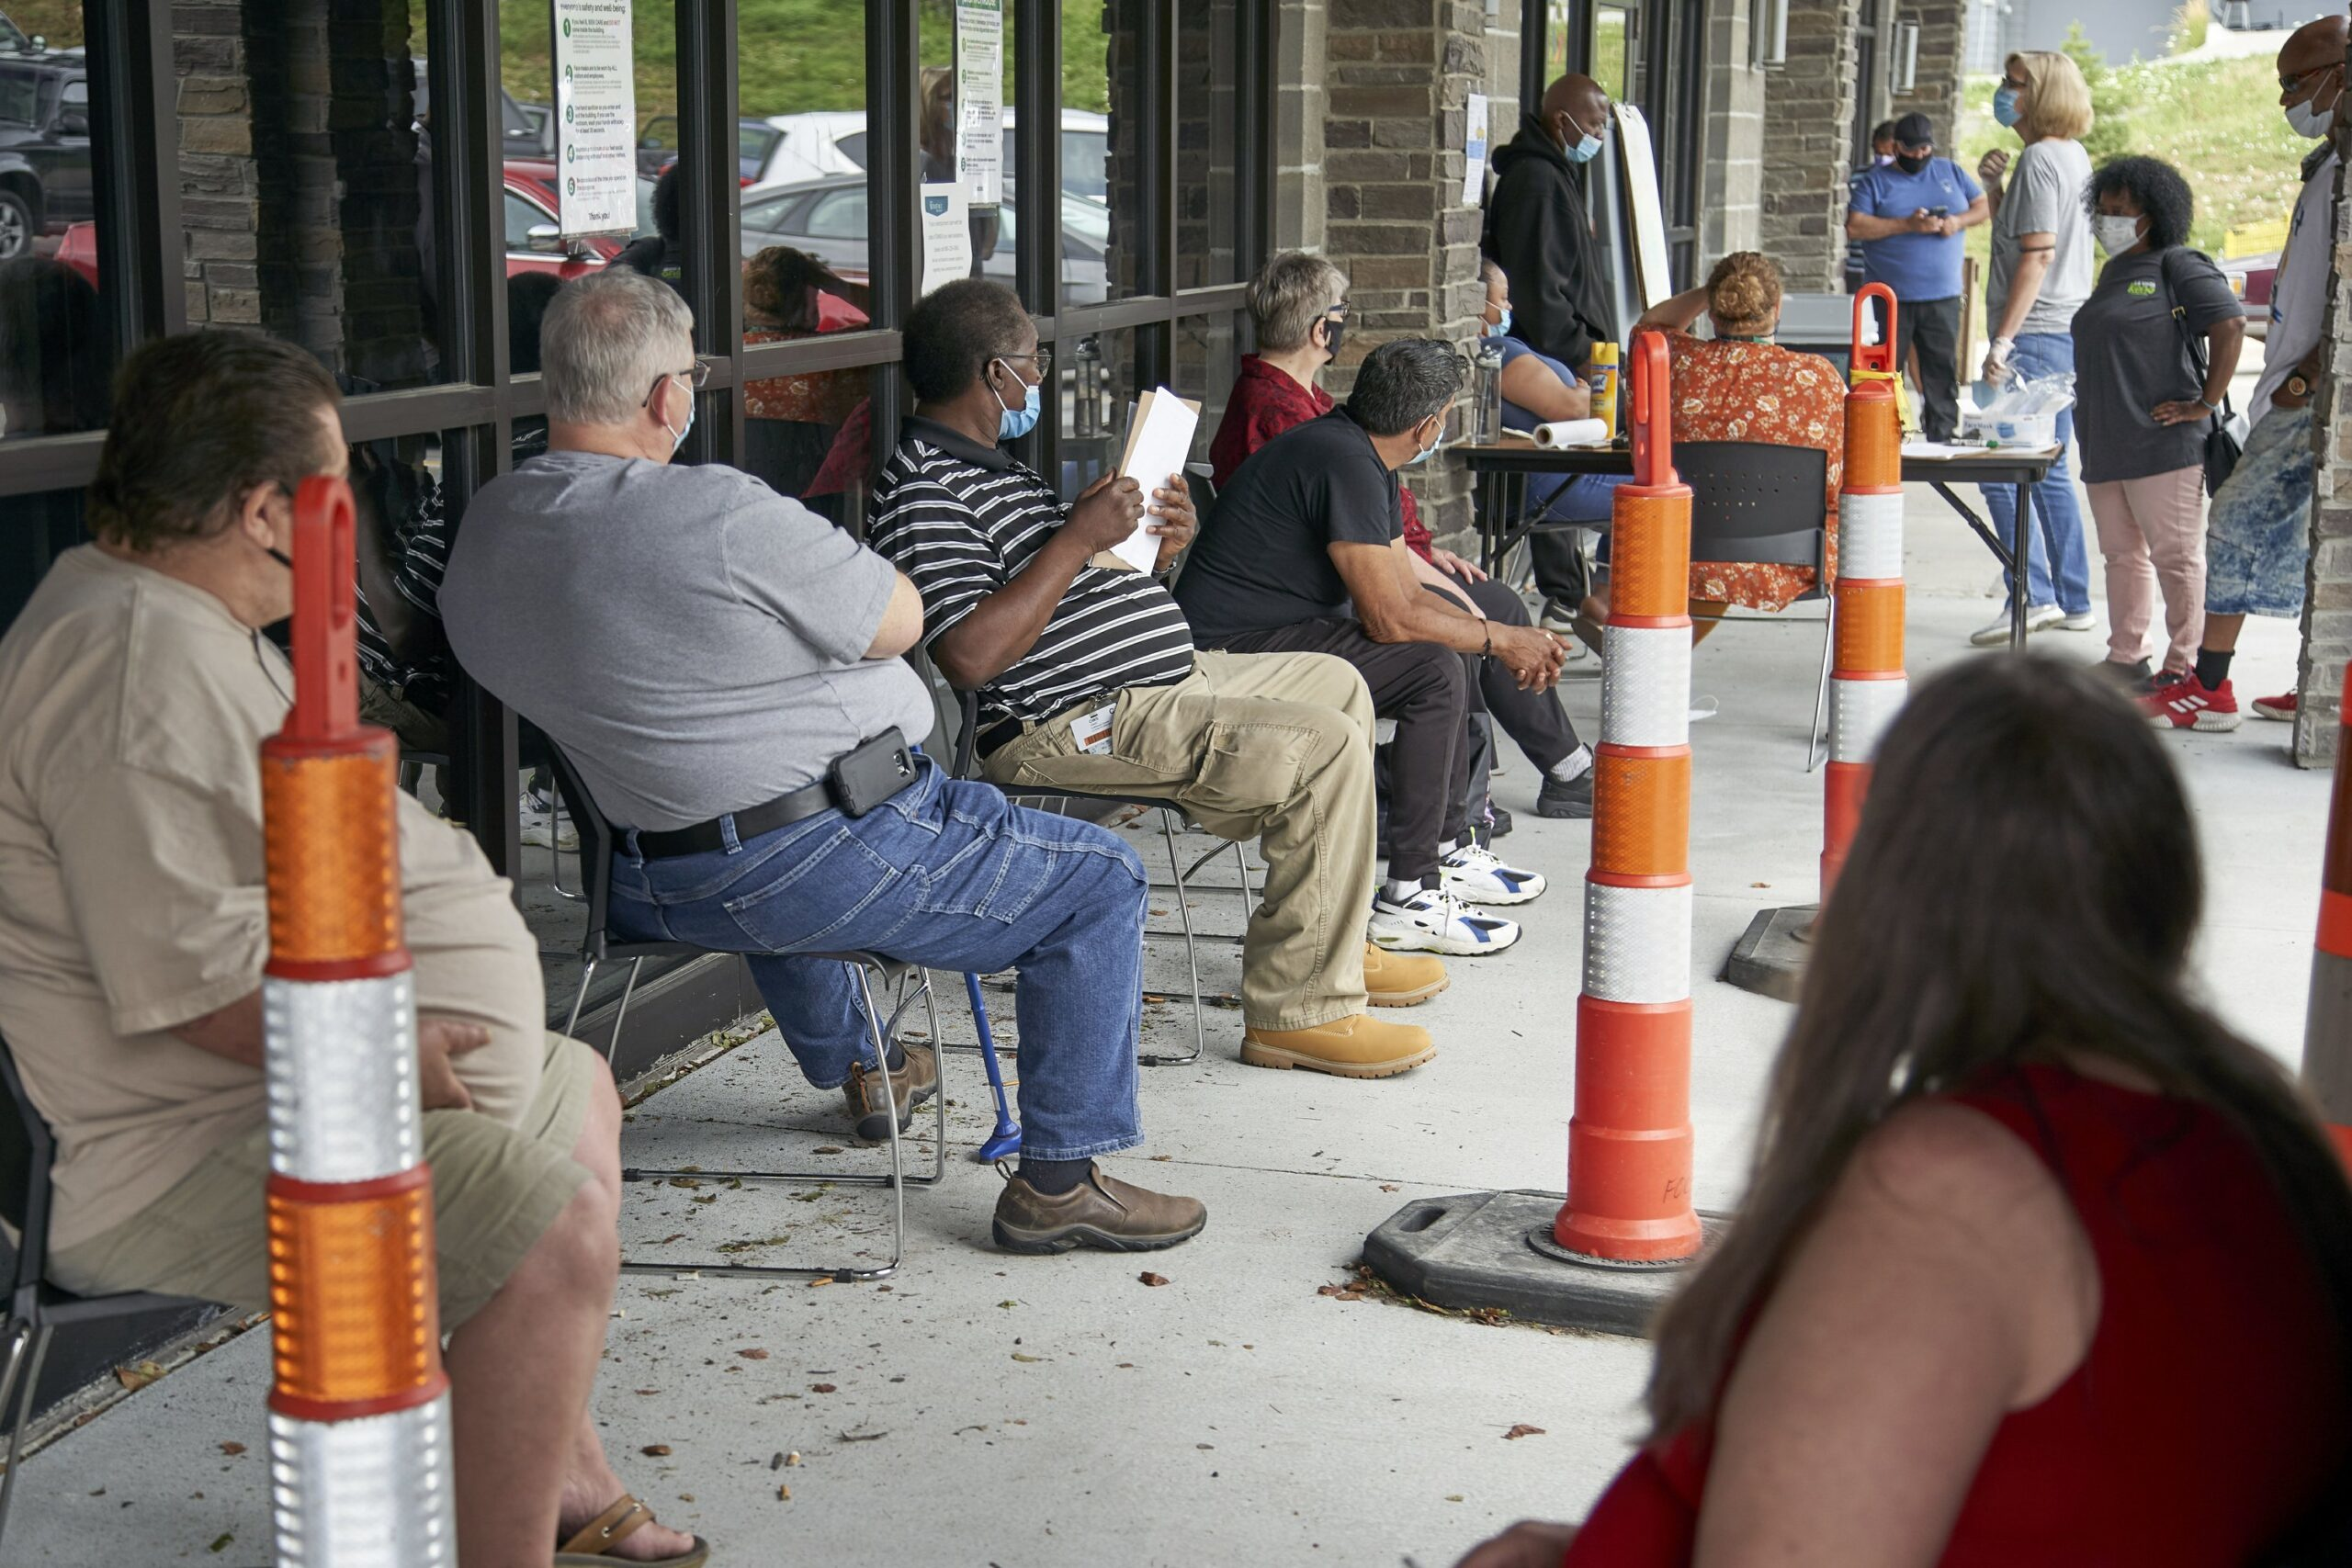 GOP's jobless benefit plan could mean delays, states warn 4